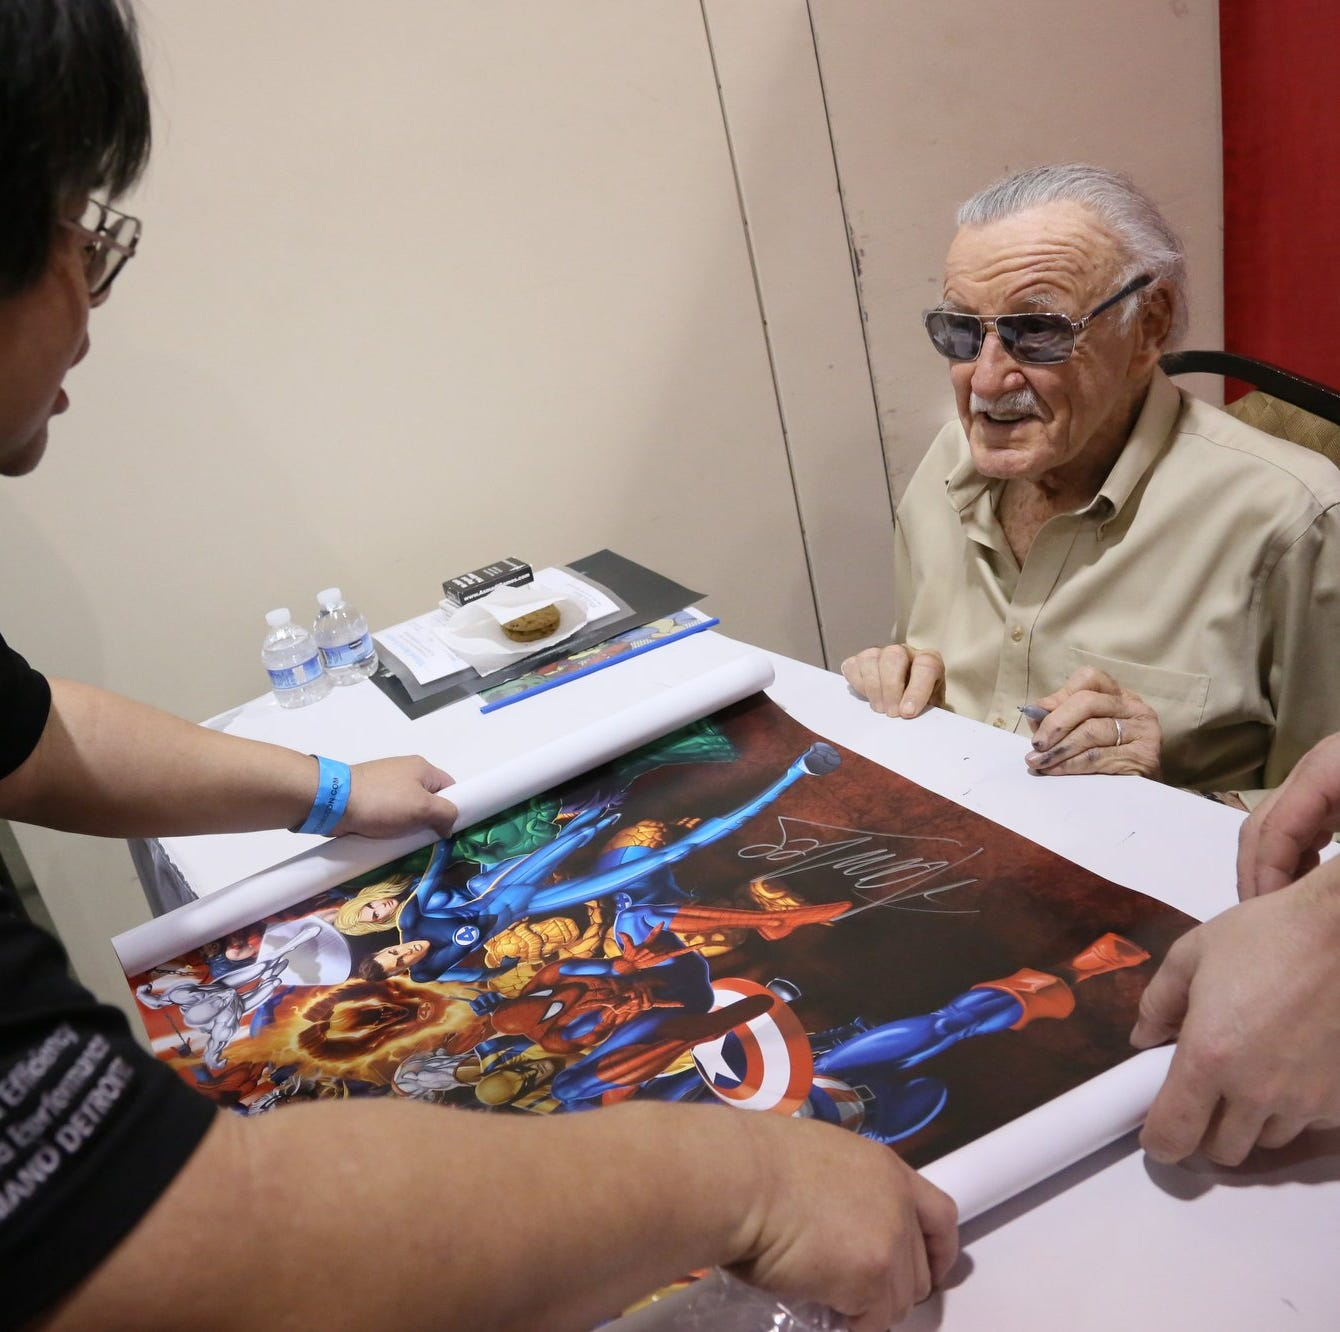 The time Stan Lee made a rock-star visit to metro Detroit's Motor City Comic Con